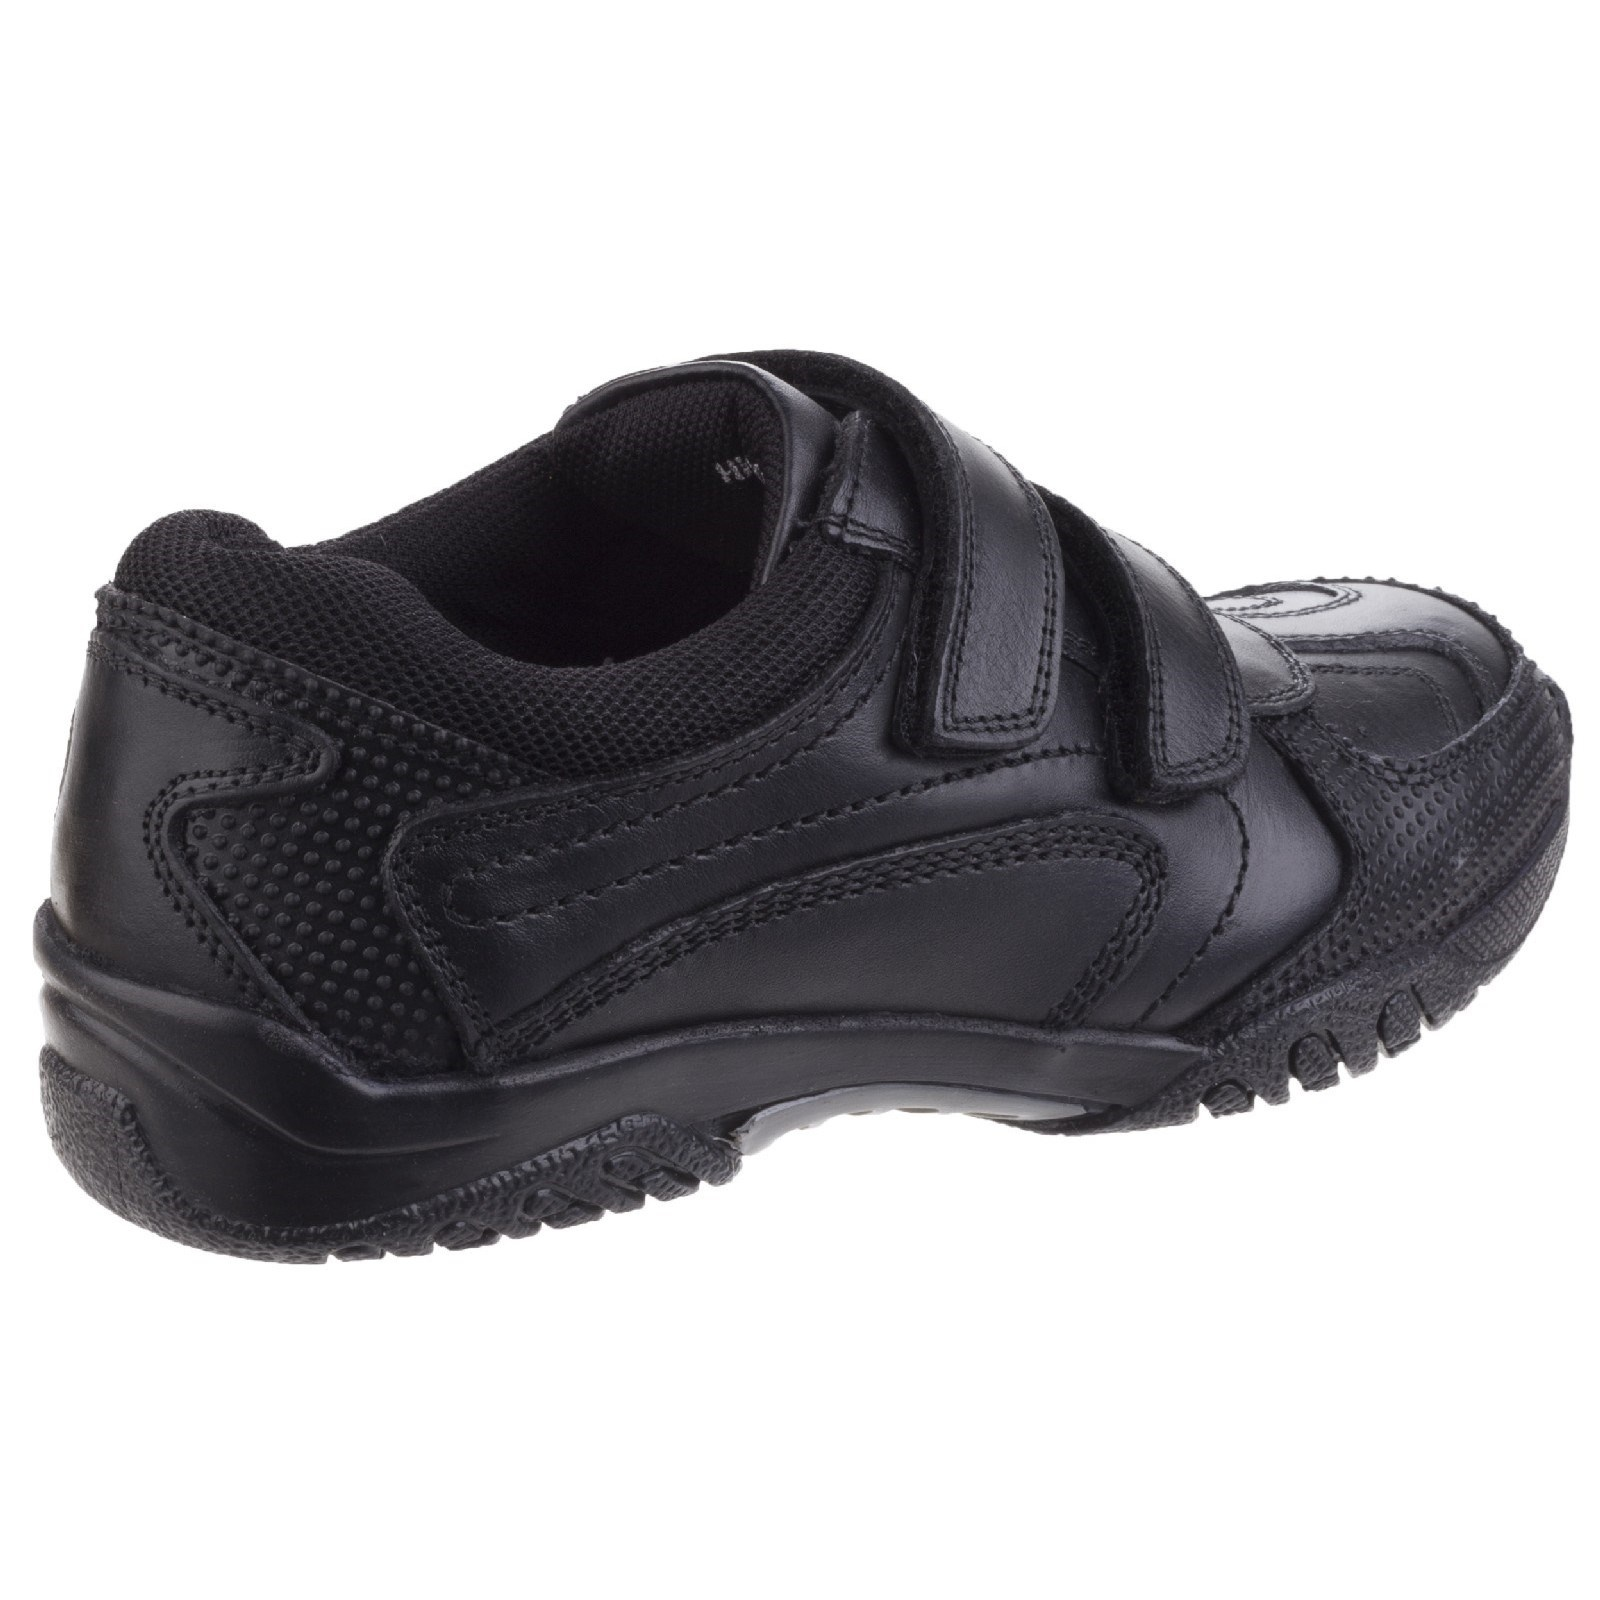 Hush Puppies Jezza Junior